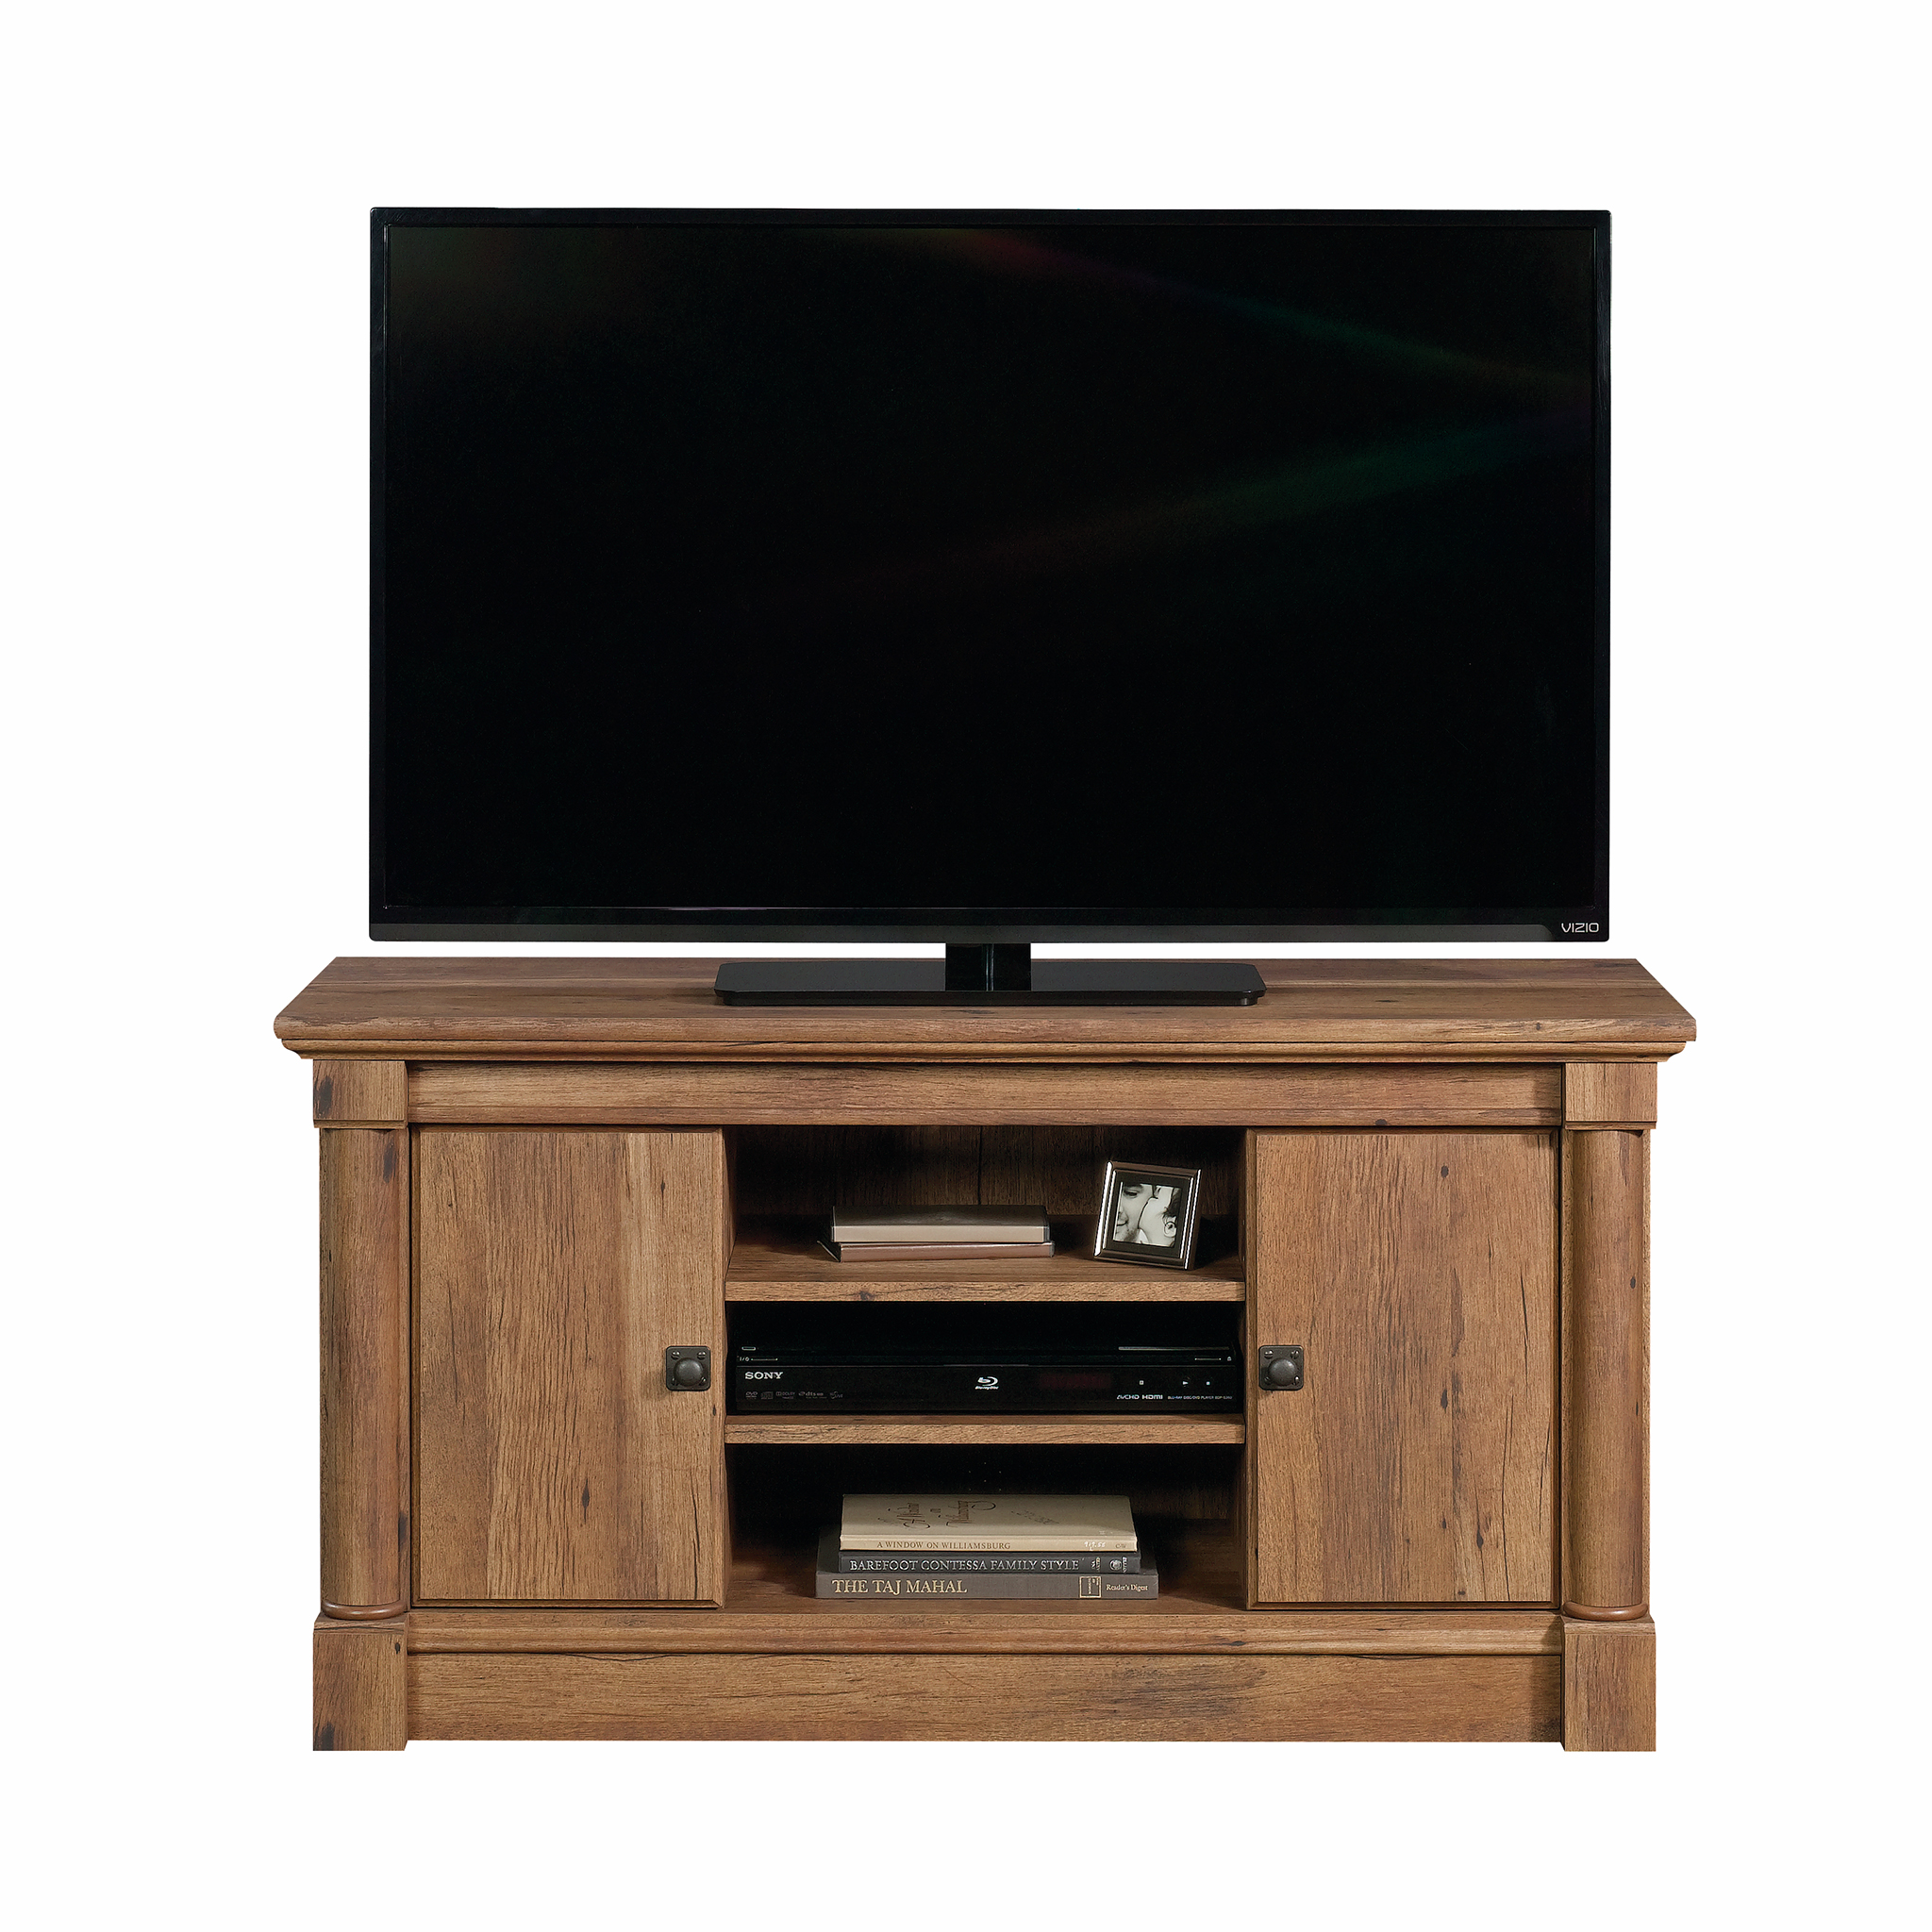 Sauder Palladia Panel Tv Stand For Tvs Up To 50 Vintage Oak Finish